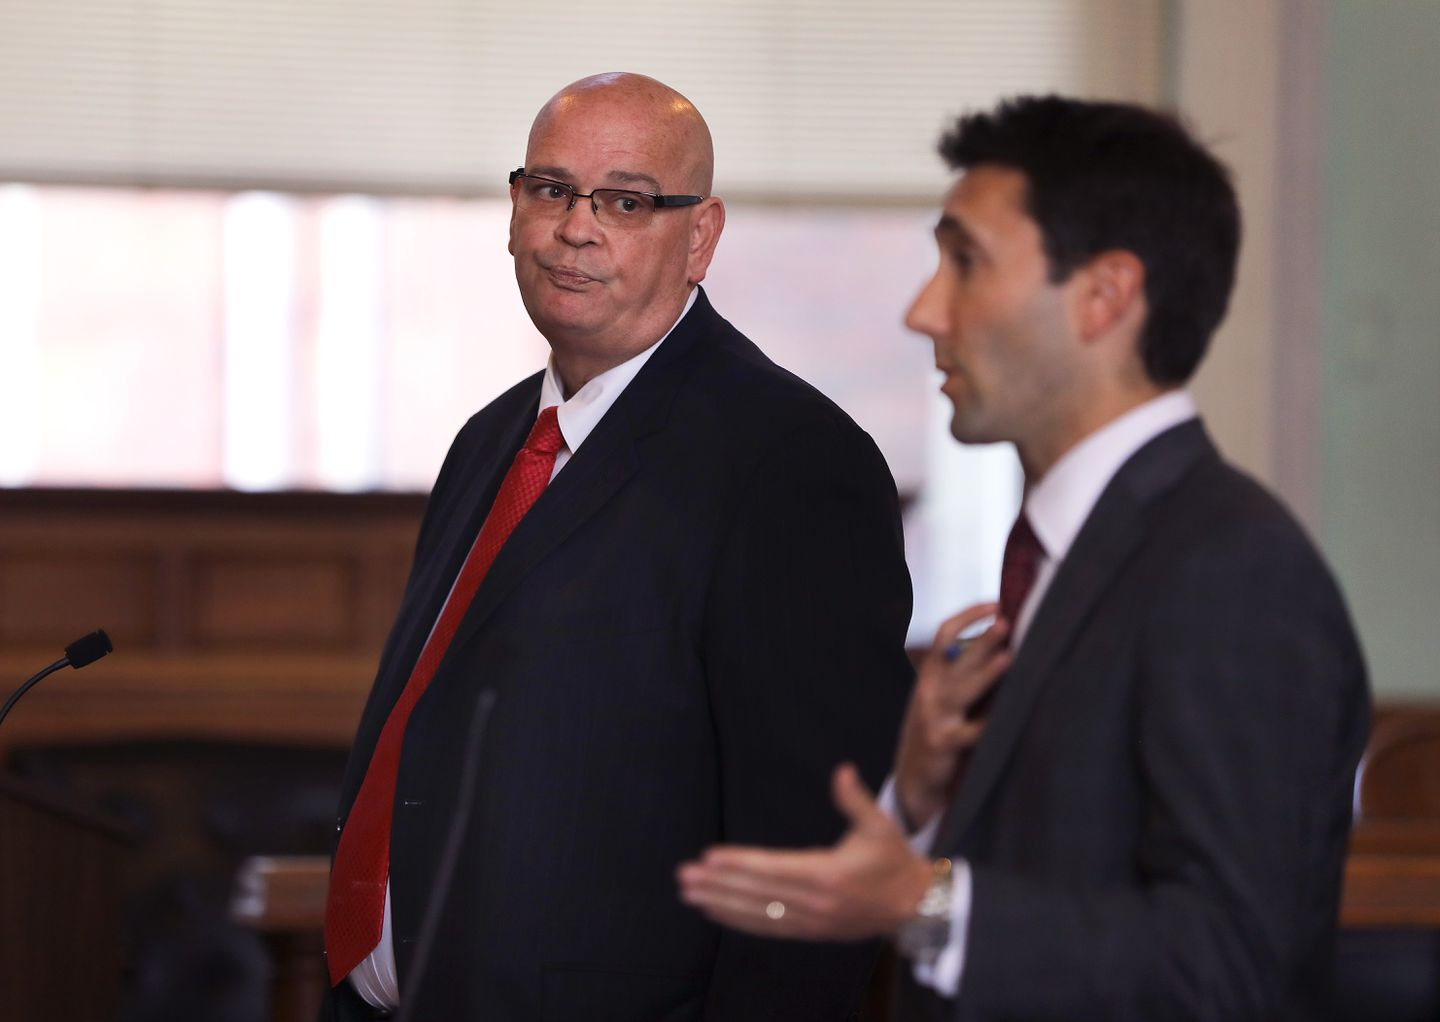 Founder of Medford biotech who defrauded investors of $7.5m gets 7 years in prison